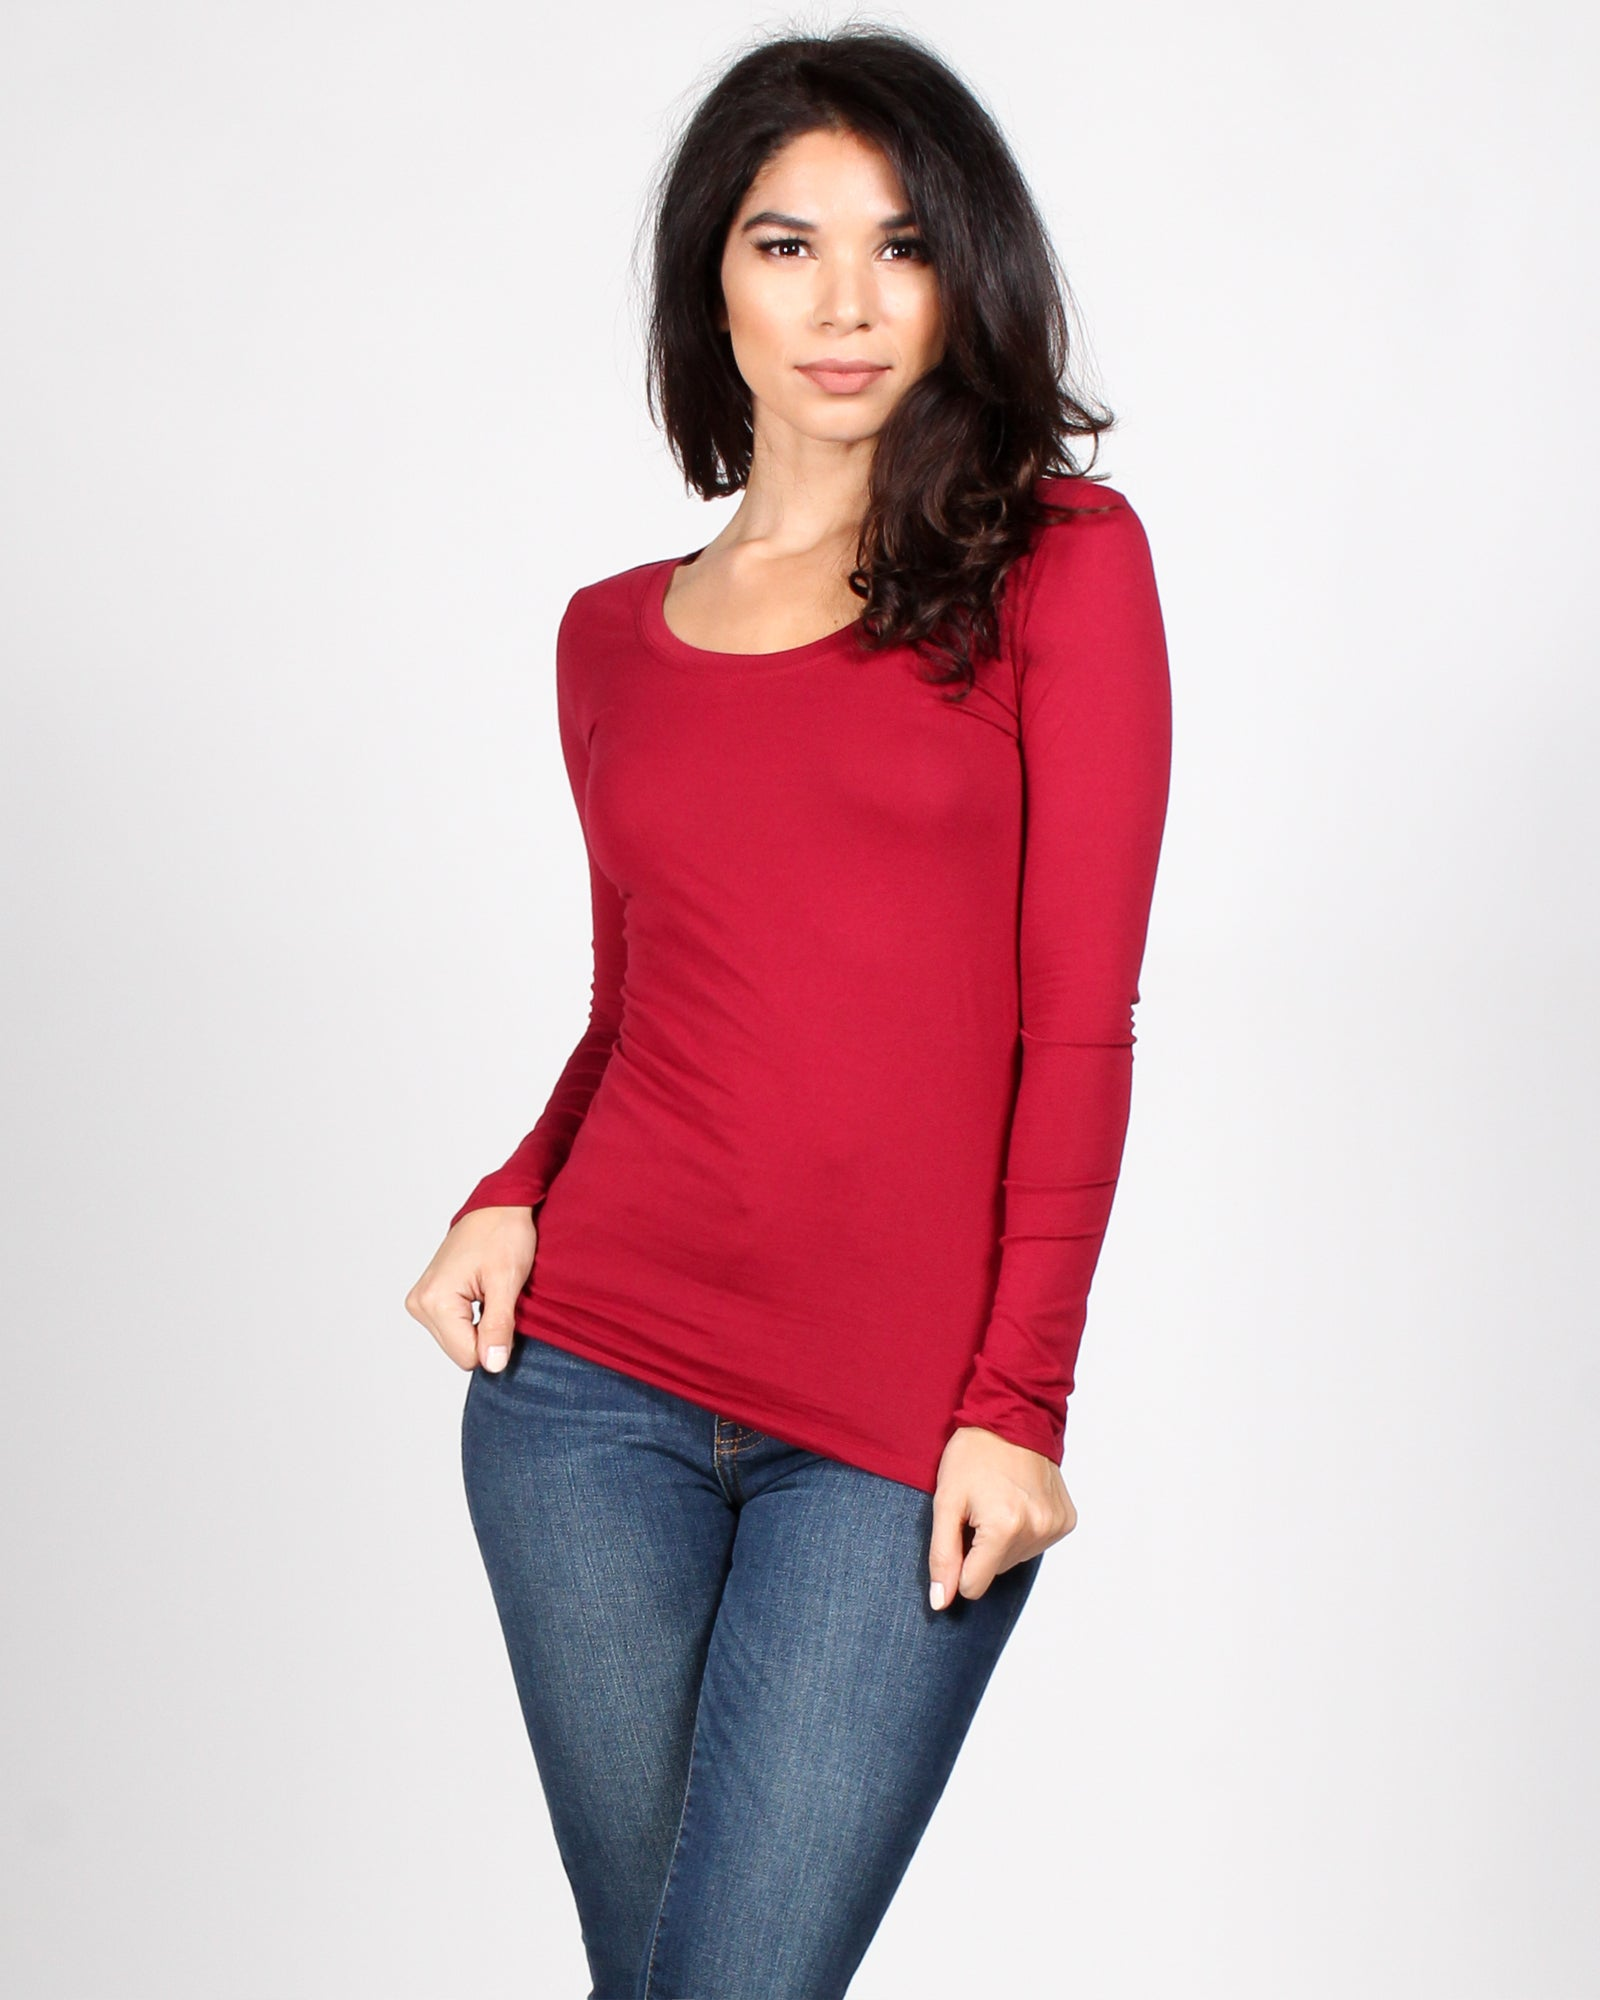 Fashion Q Shop Q The Q Basics: Round Neck Long Sleeve Top (Burgundy) 8008-IJ